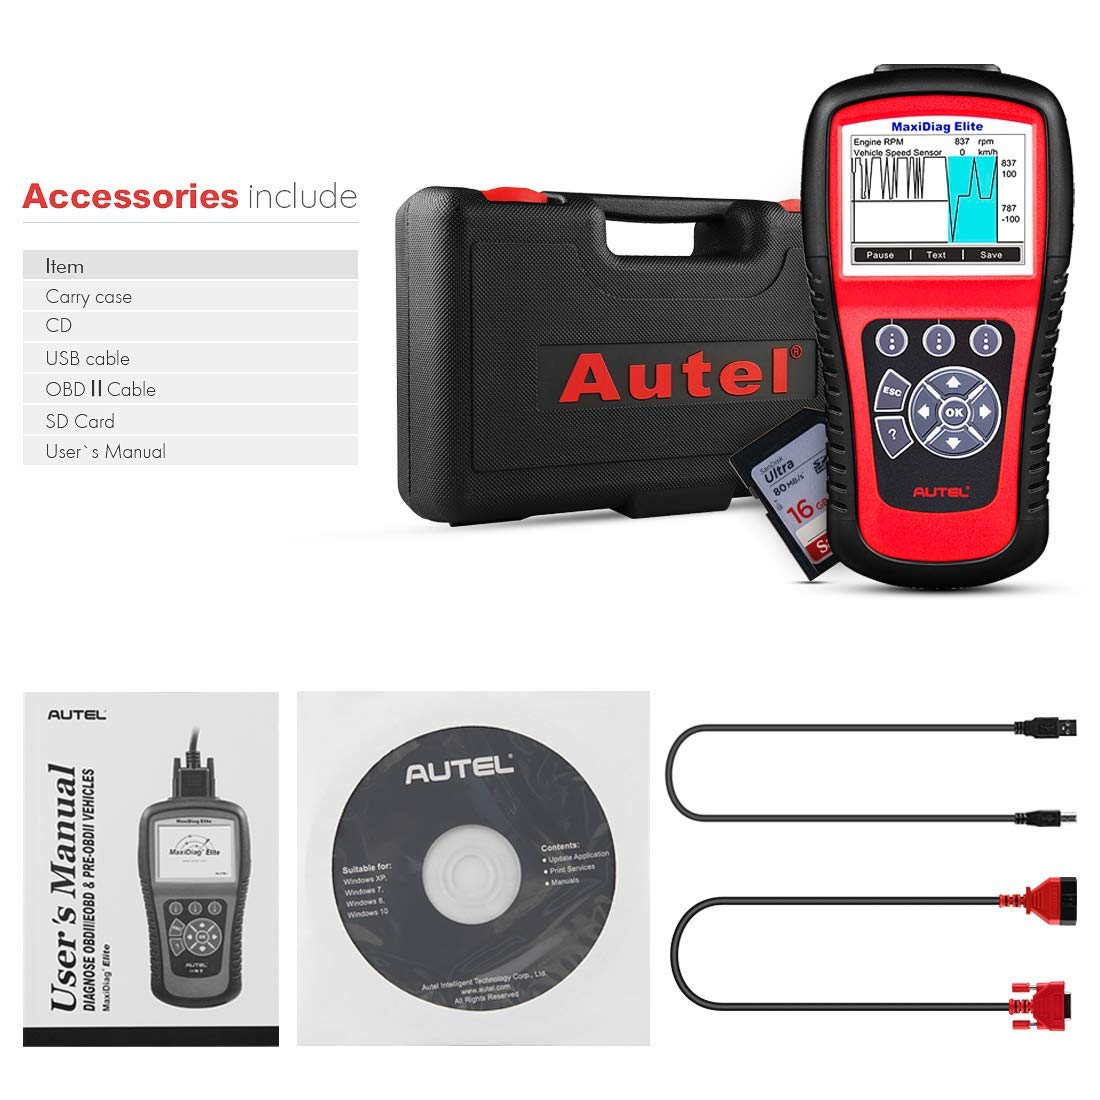 Autel Scanner MD802 Maxidiag Elite Diagnoses for ABS, Engine, Transmission, Airbag, EPB, Oil Service Reset Code Reader OBD2 Diagnostic Tool by Autel (Image #7)